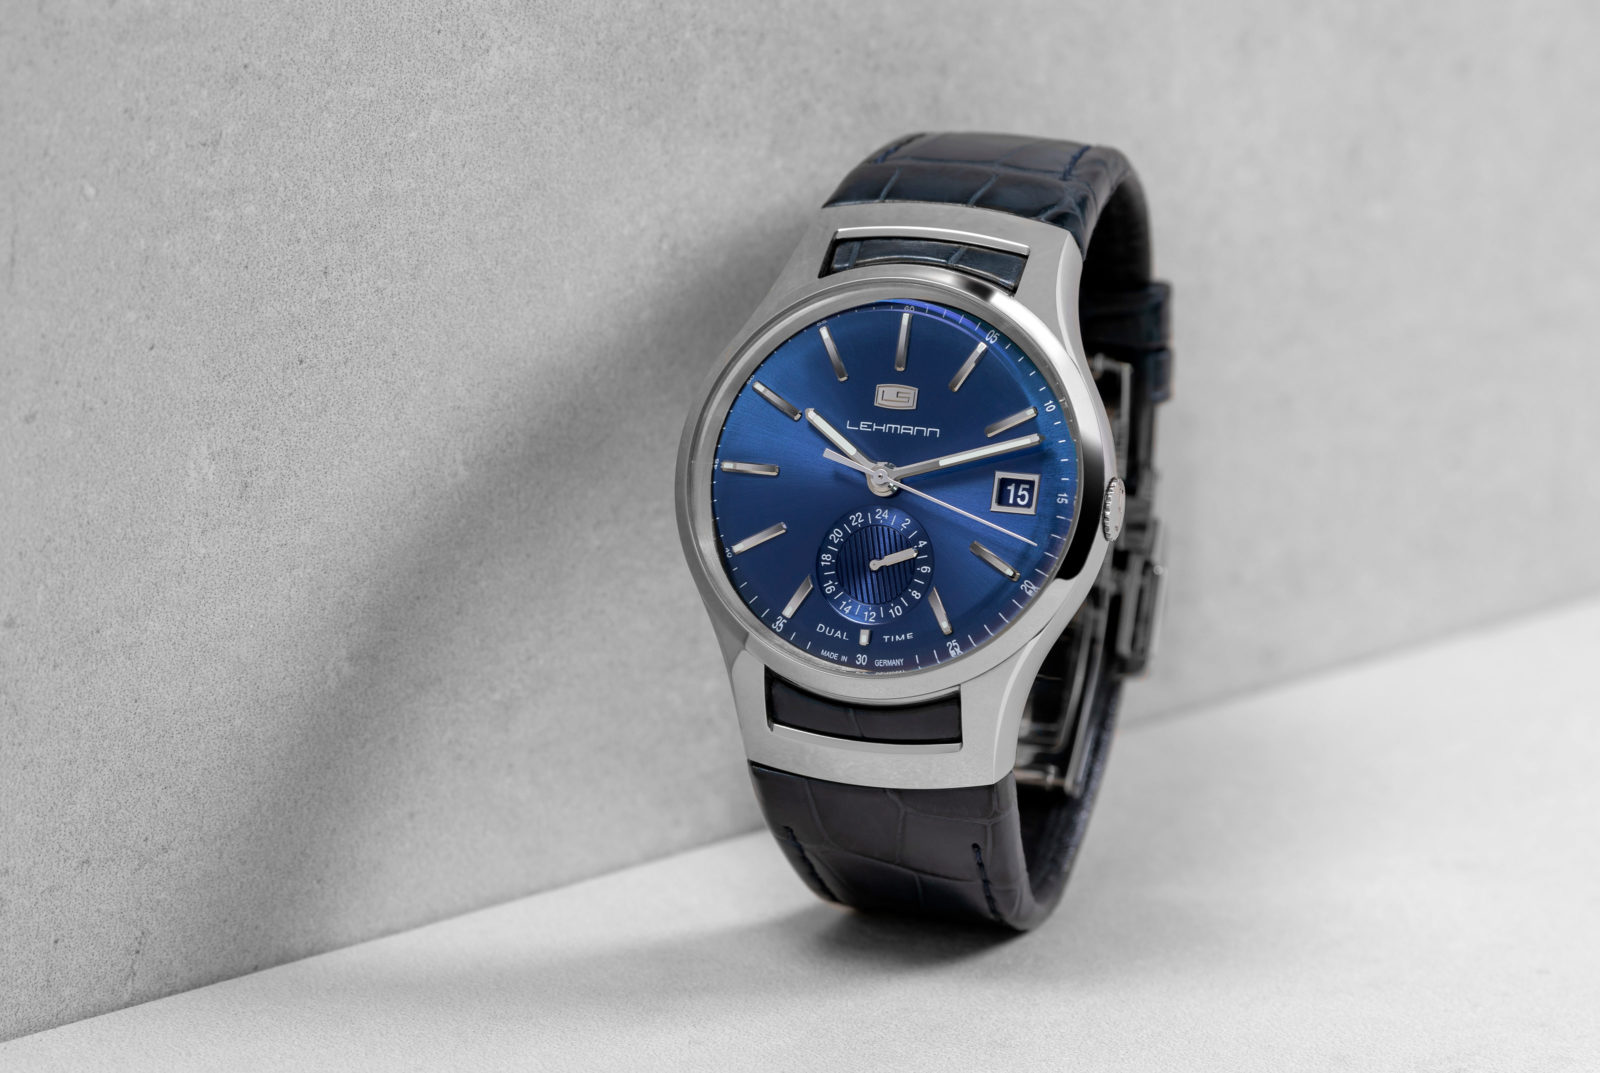 Lehmann Uhren Dual Time in blau